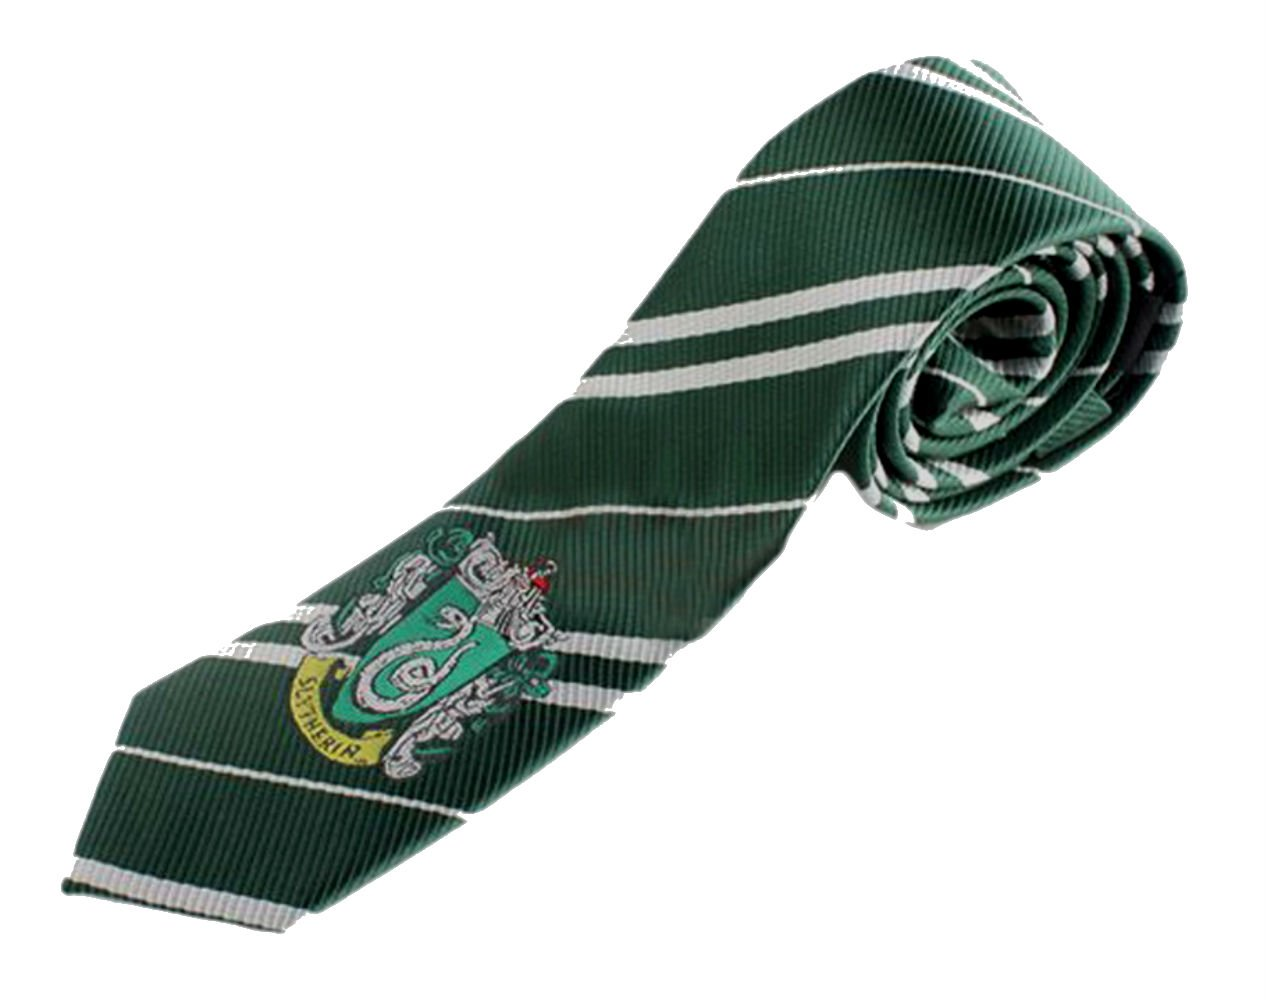 Harry Potter House Crest Tie 57 x 2.75 InspireMe Family Owned (Slytherin - Green/Gray)